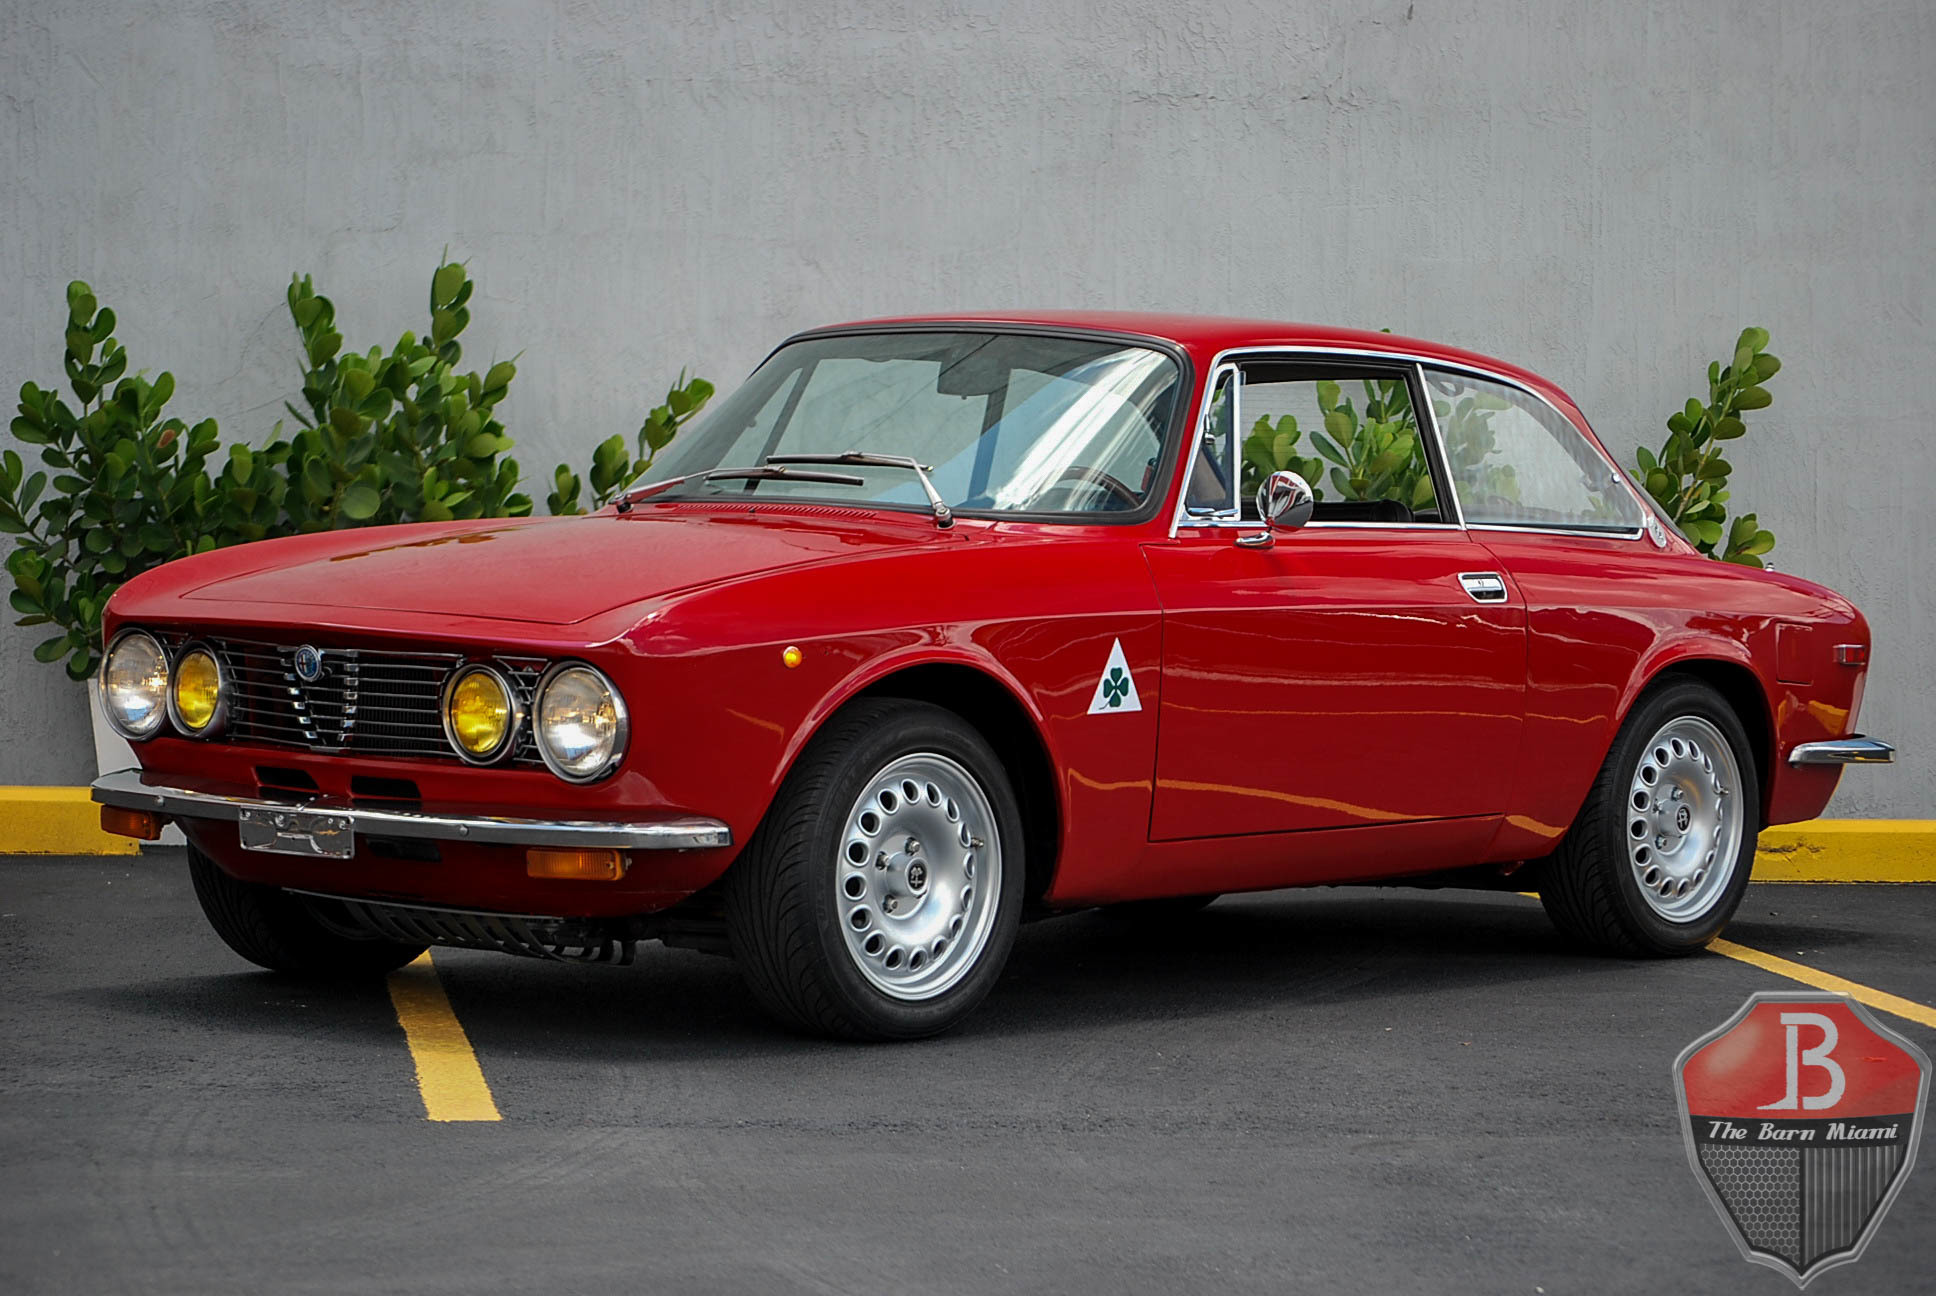 1972 Alfa Romeo Gtv The Barn Miami Springs 2000 Only 76k Original Miles Exceptional Rust Free Example Many Upgrades Such As Koni Shocks Sport Yellow